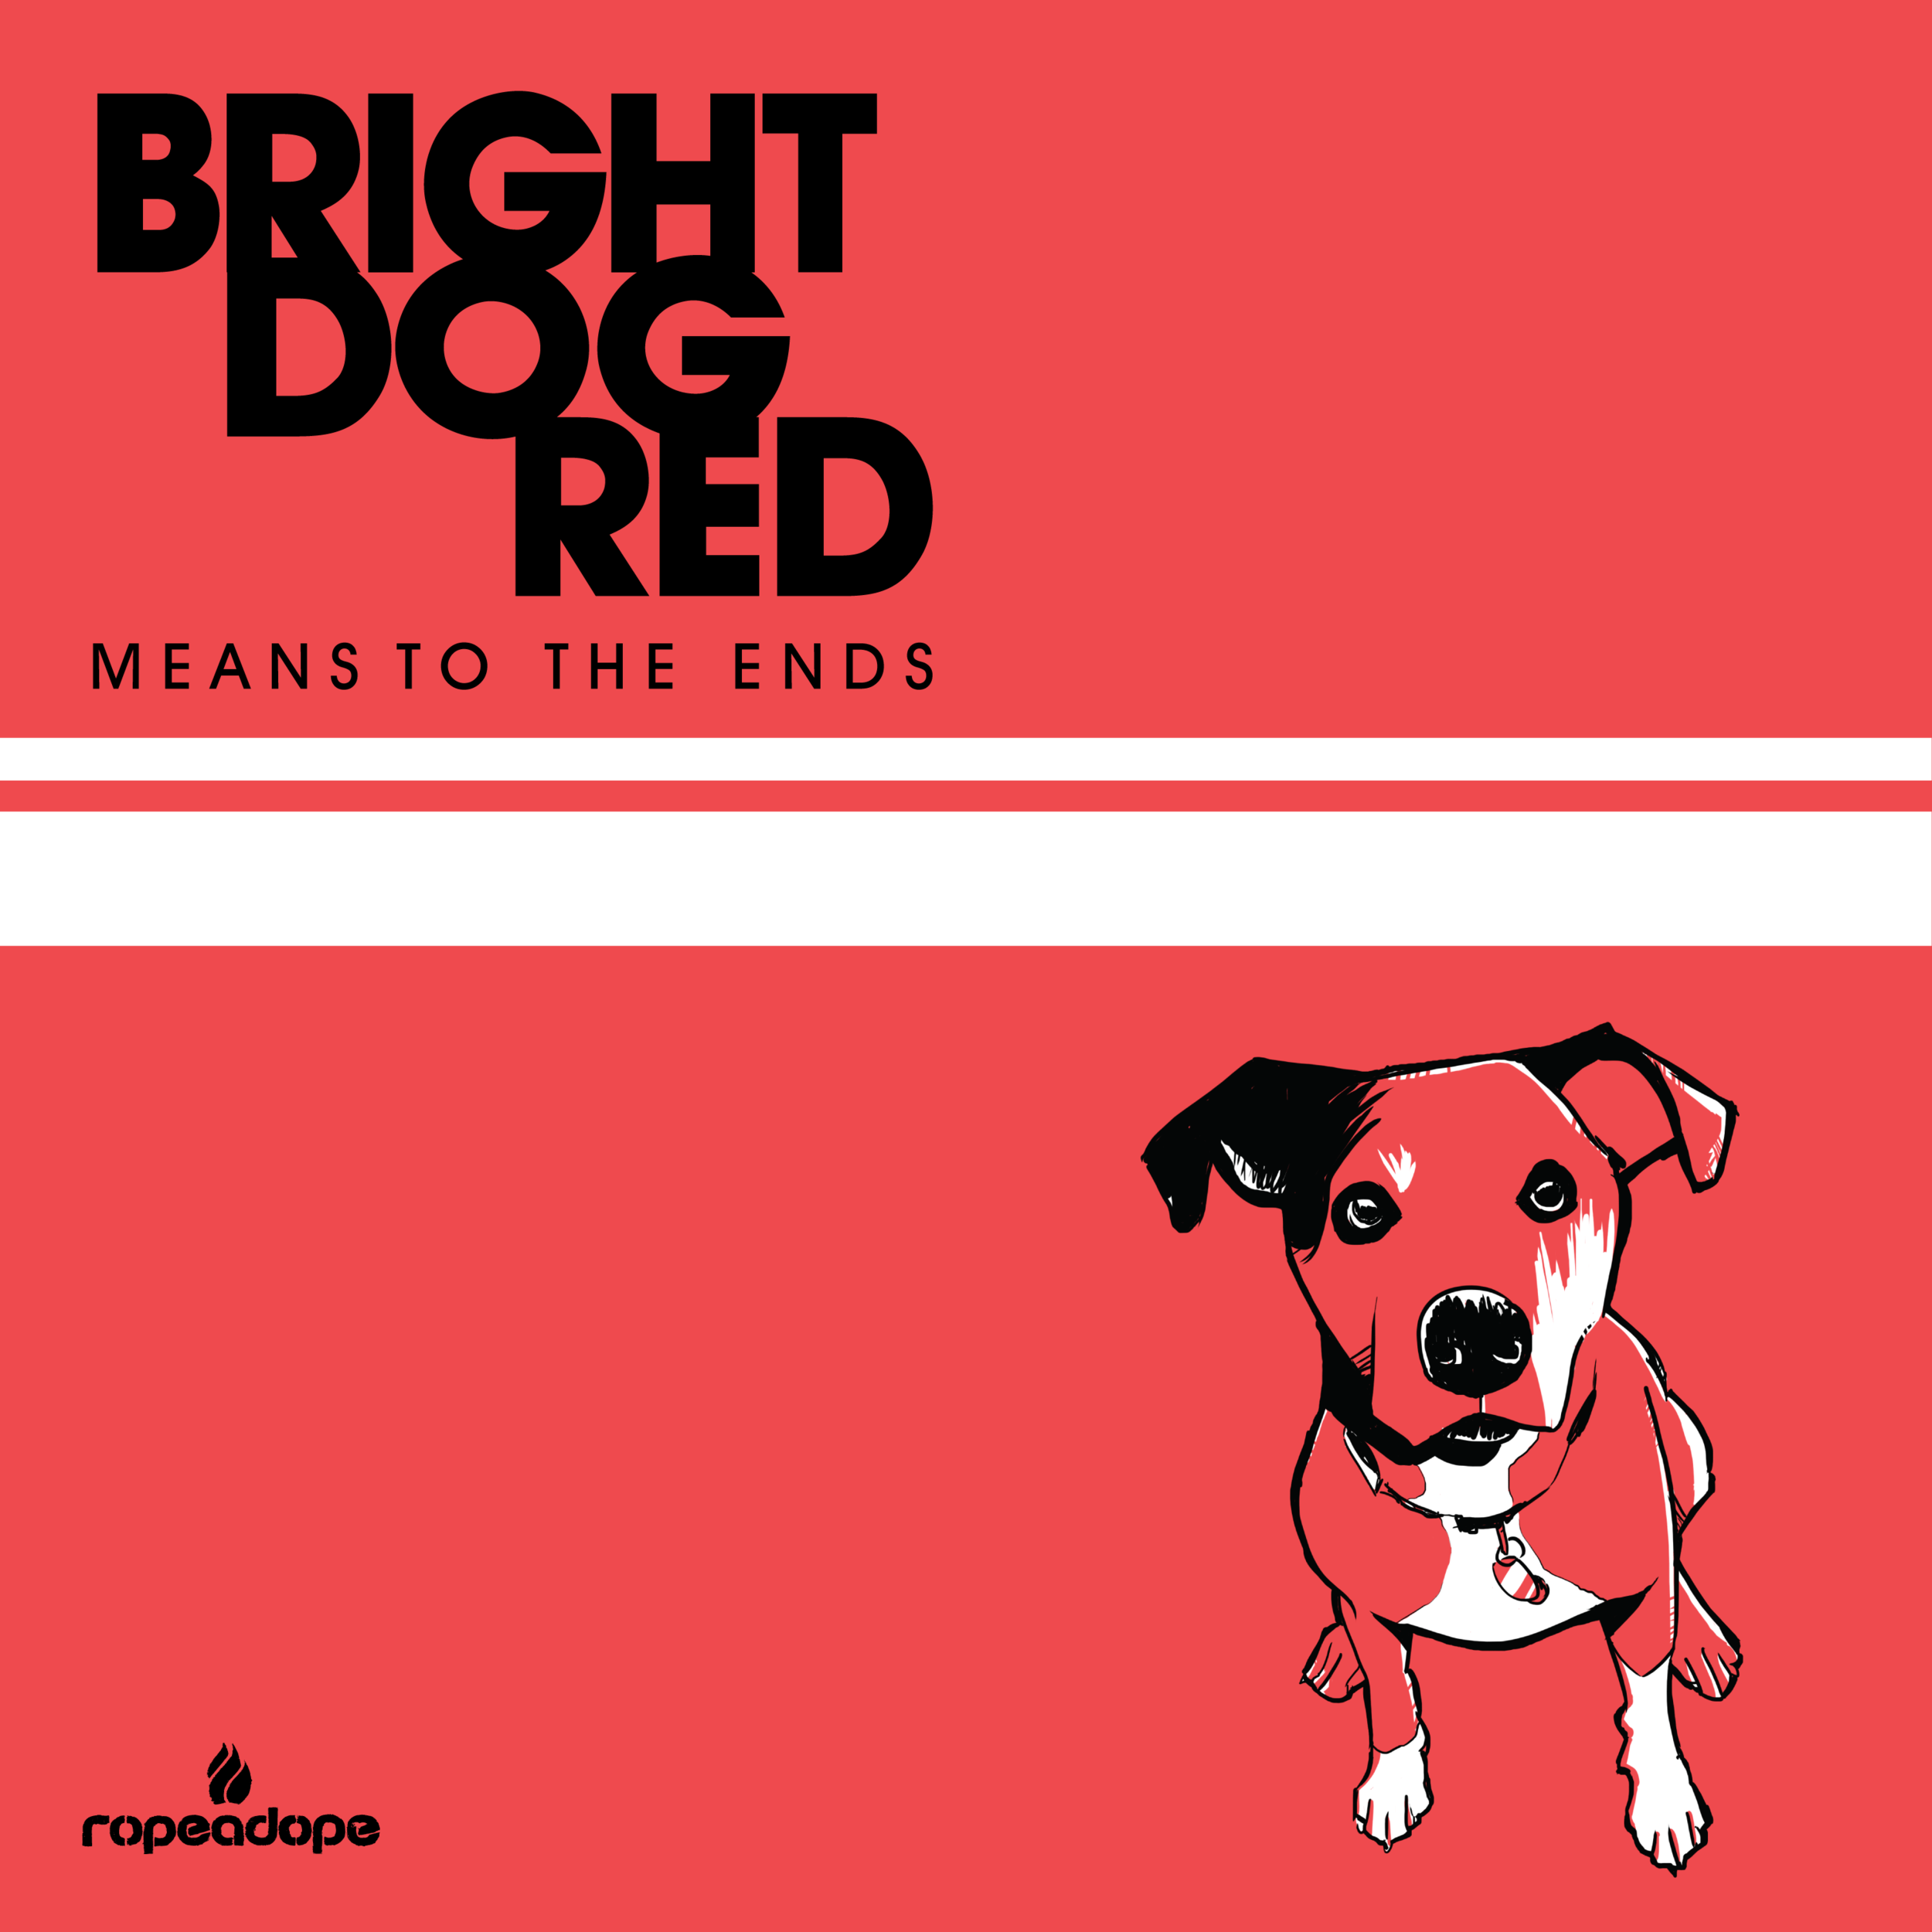 bright-dog-red-album-3000px.png